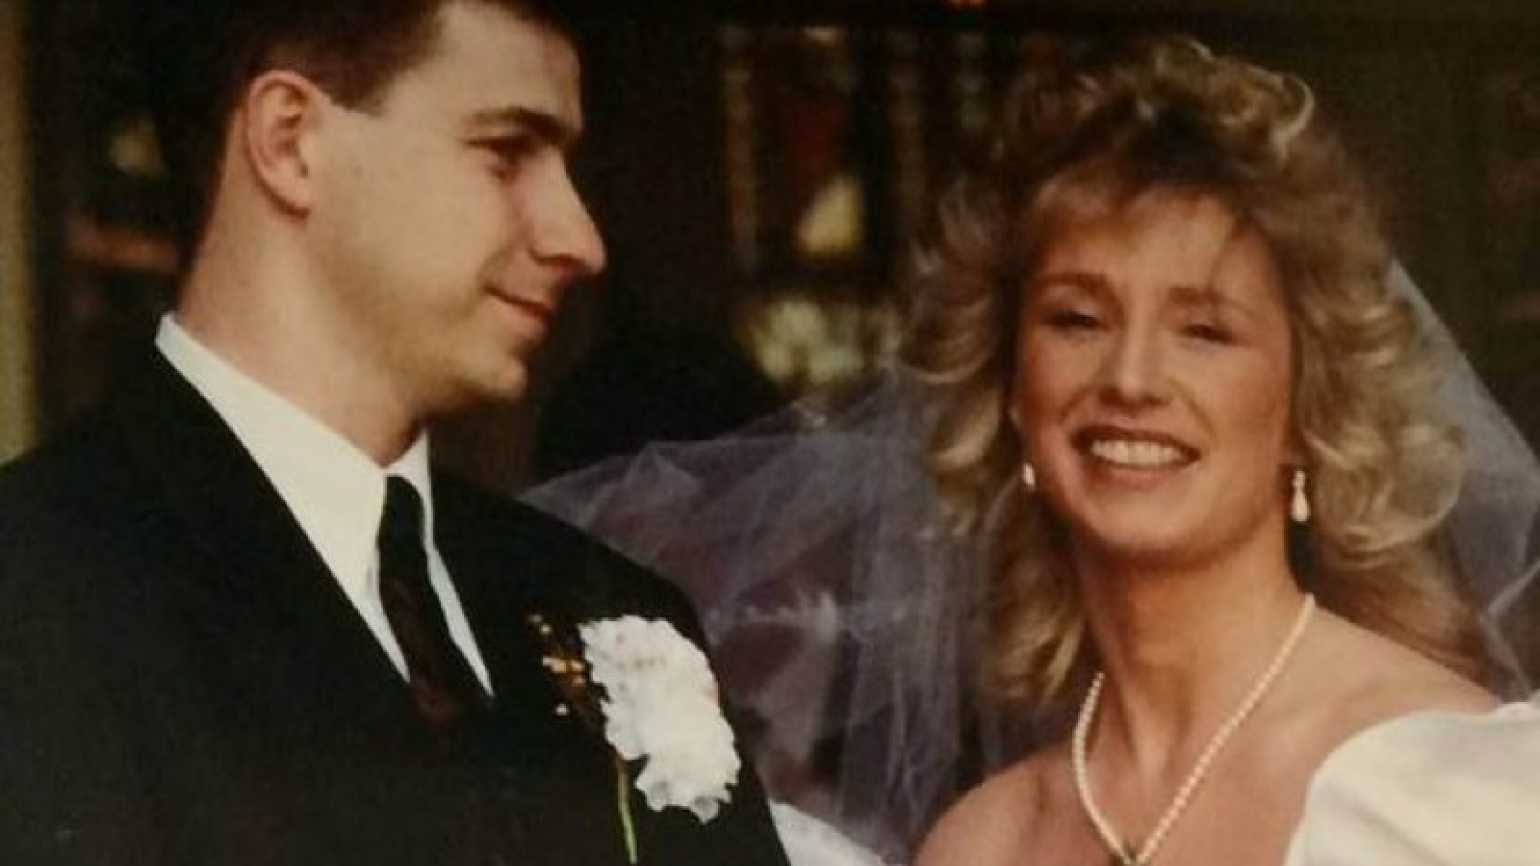 Steve and Maria on their wedding day, 21 years ago. Credit: Daily Express.